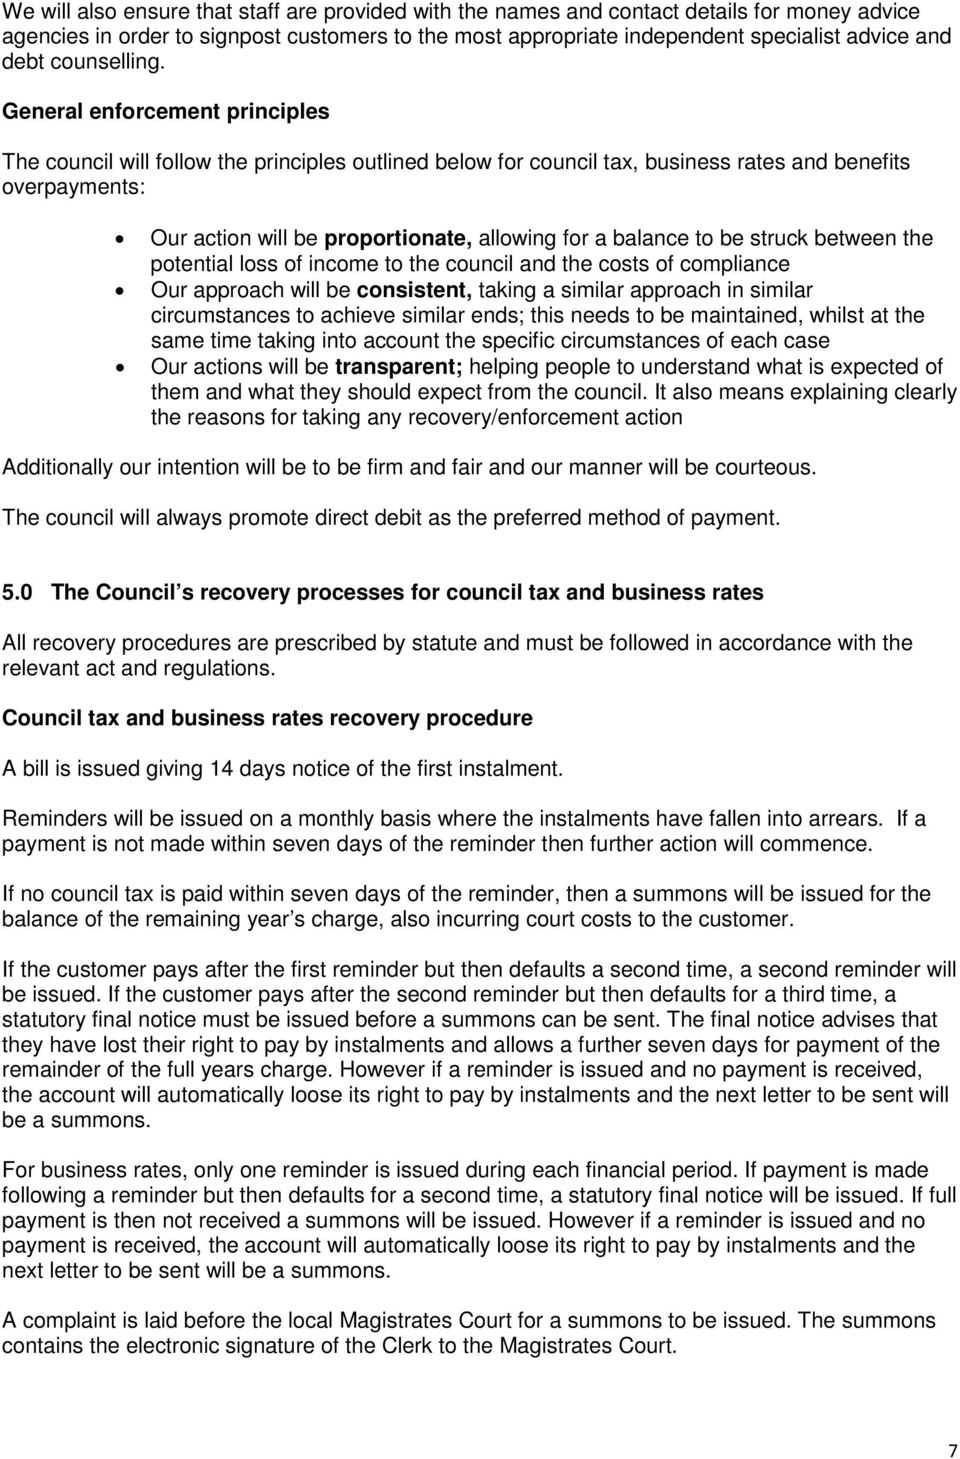 General enforcement principles The council will follow the principles outlined below for council tax, business rates and benefits overpayments: Our action will be proportionate, allowing for a